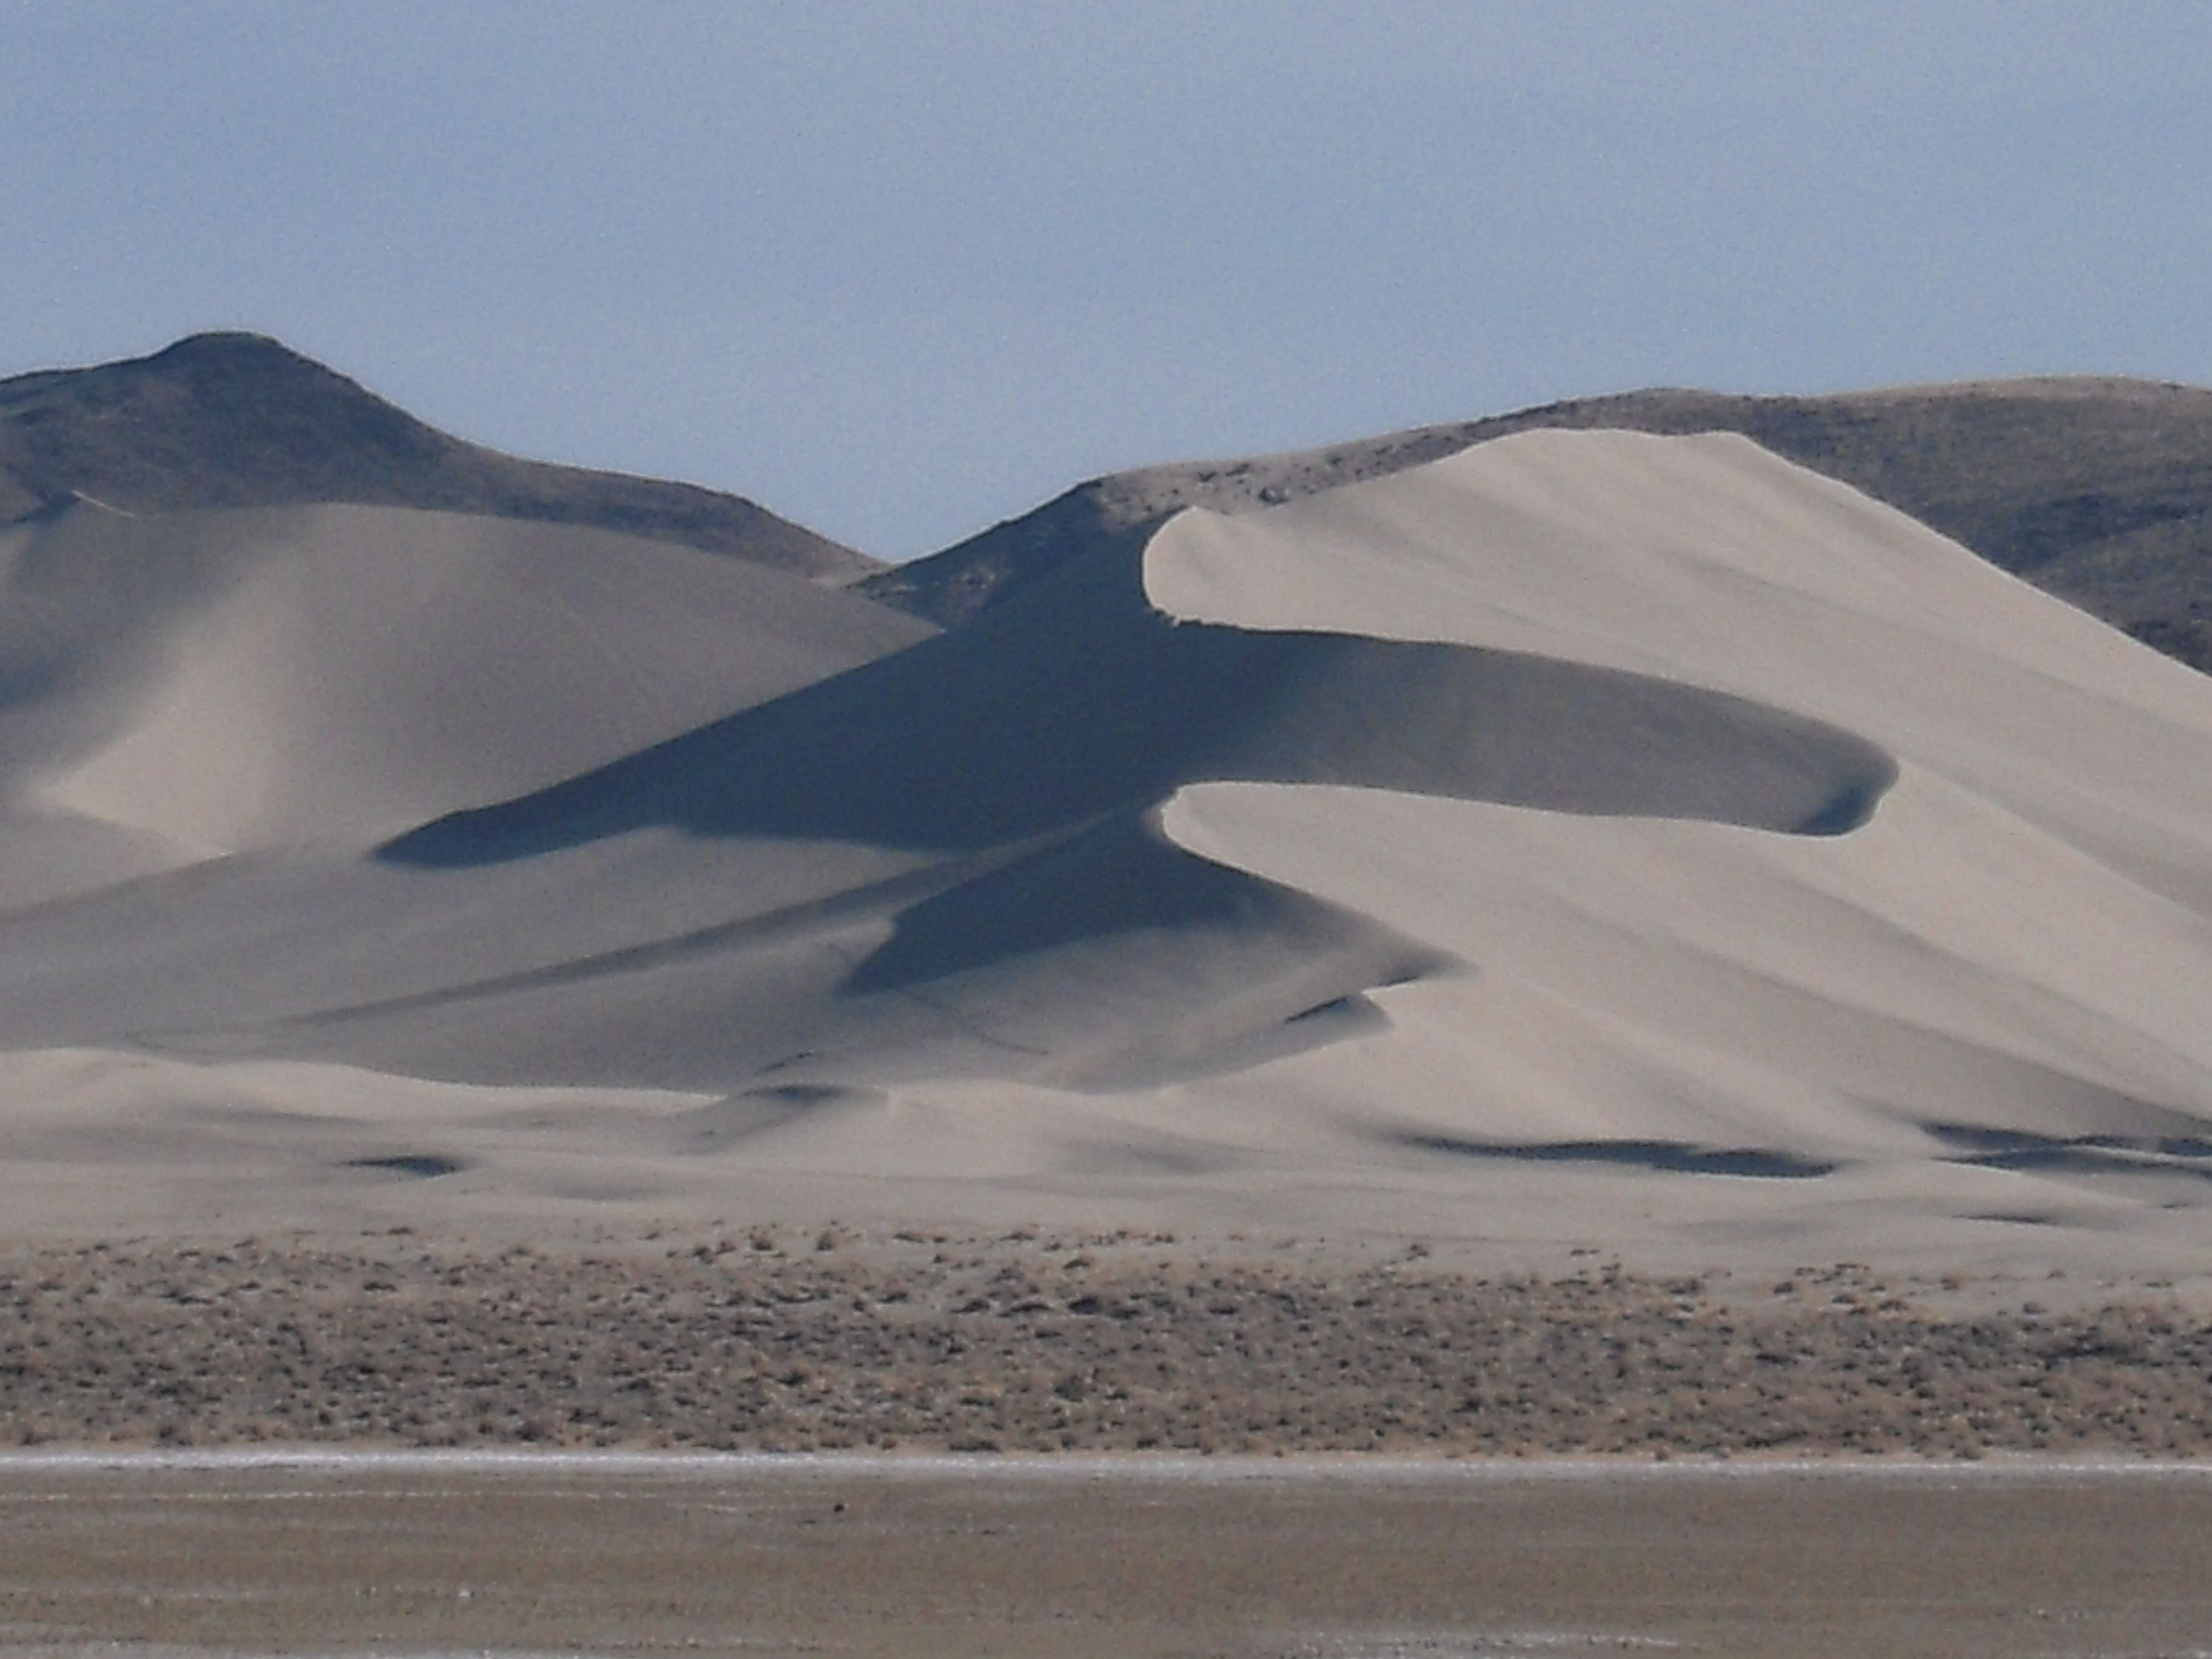 The sand originates from ancient lake lahotan. Sand Mountain Fallon Nv Would Love To Ride My Quad There Some Day It Was Fun Watching All The Other Quad Rid Places To Visit Nevada Travel Favorite Places